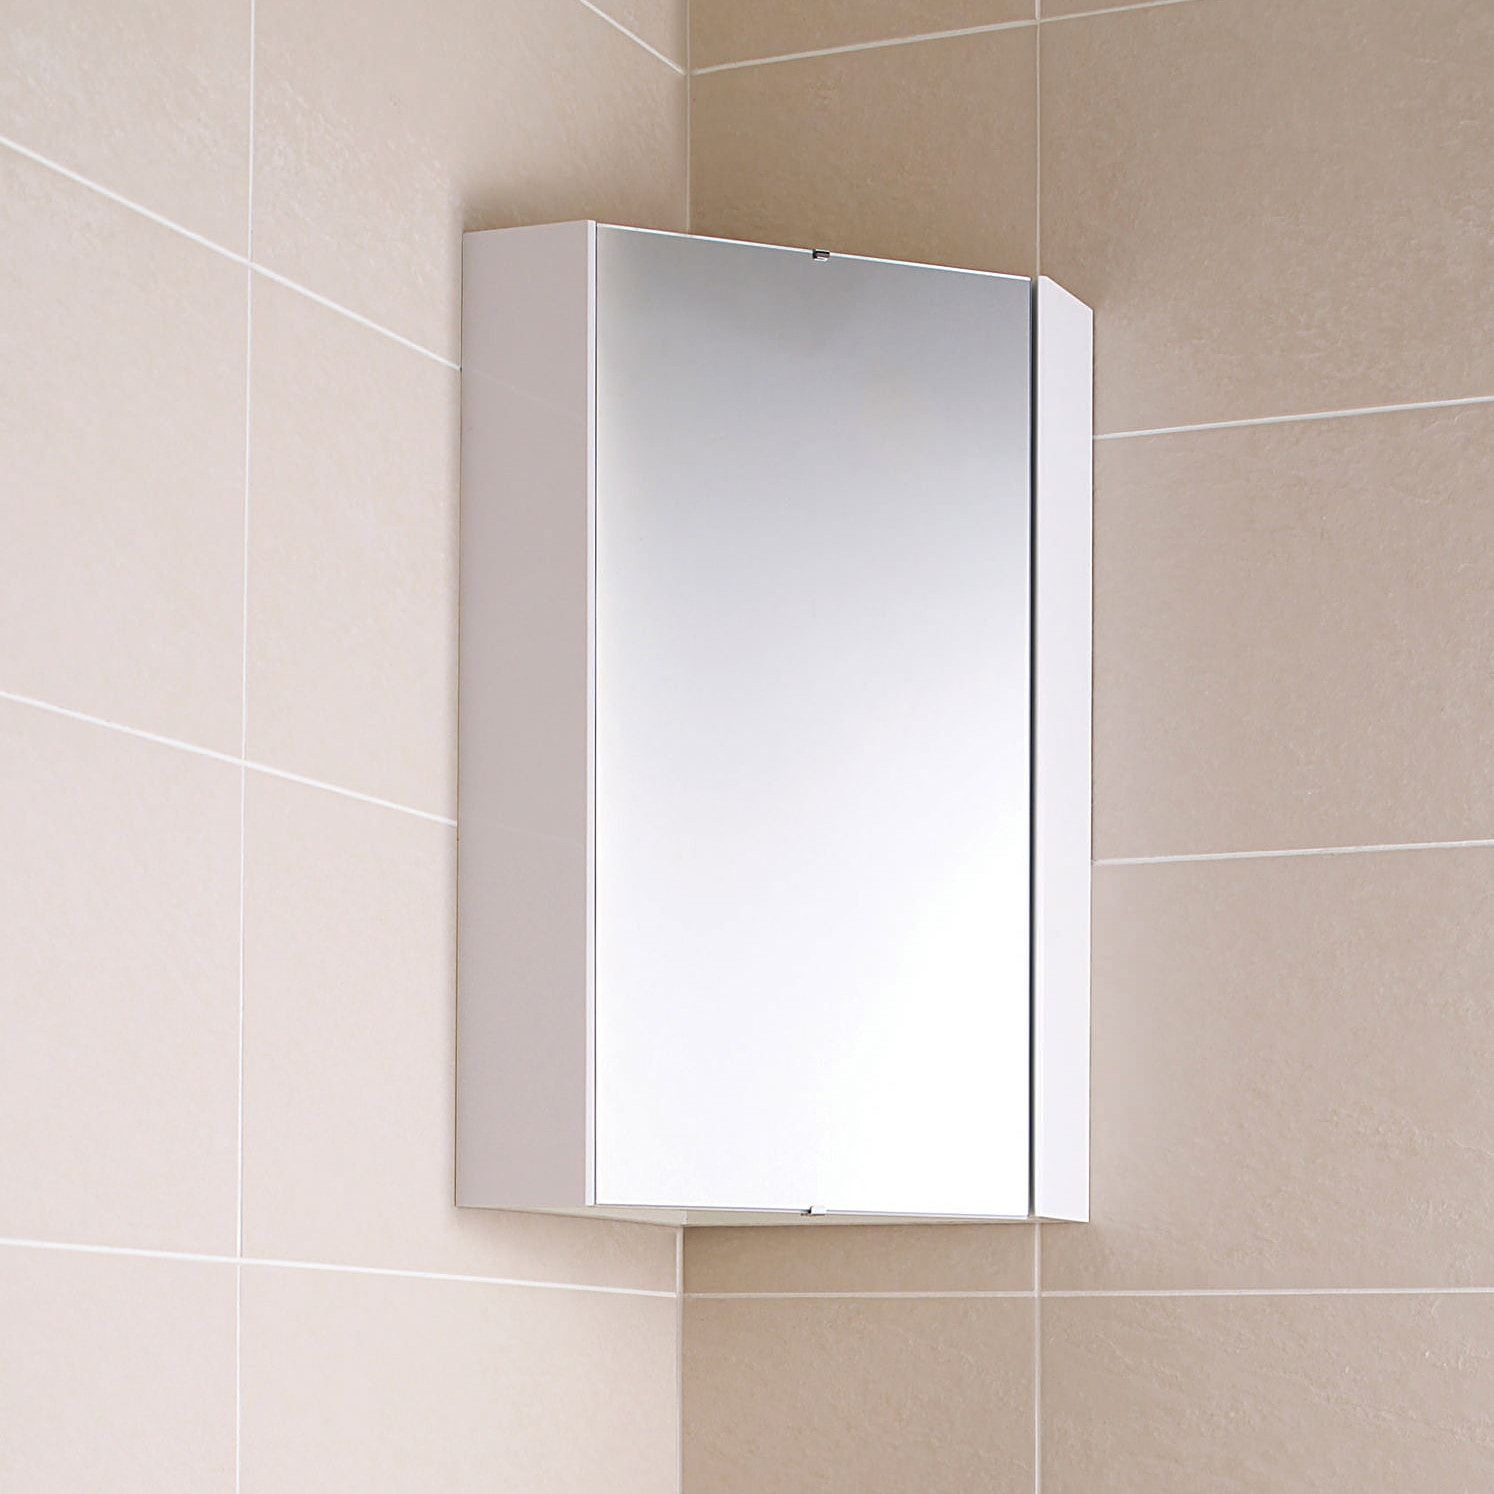 Design White Gloss Corner Mirror Cabinet